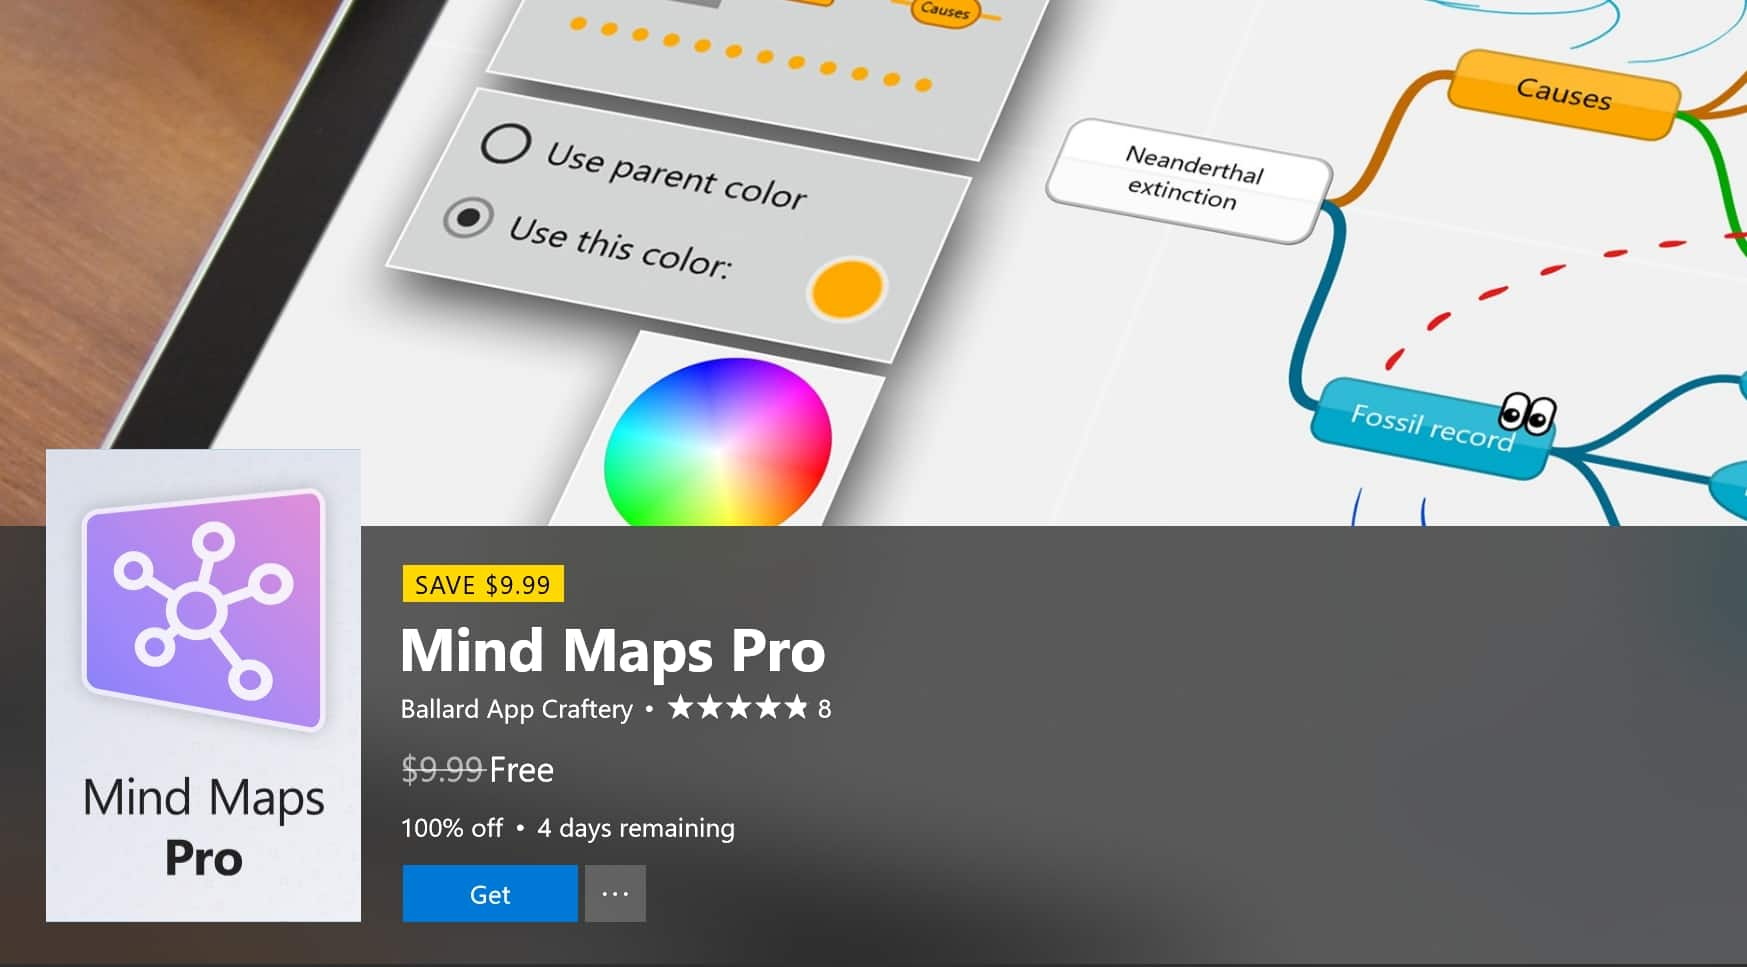 Mind Maps Pro on sale for $0 on the Microsoft Store